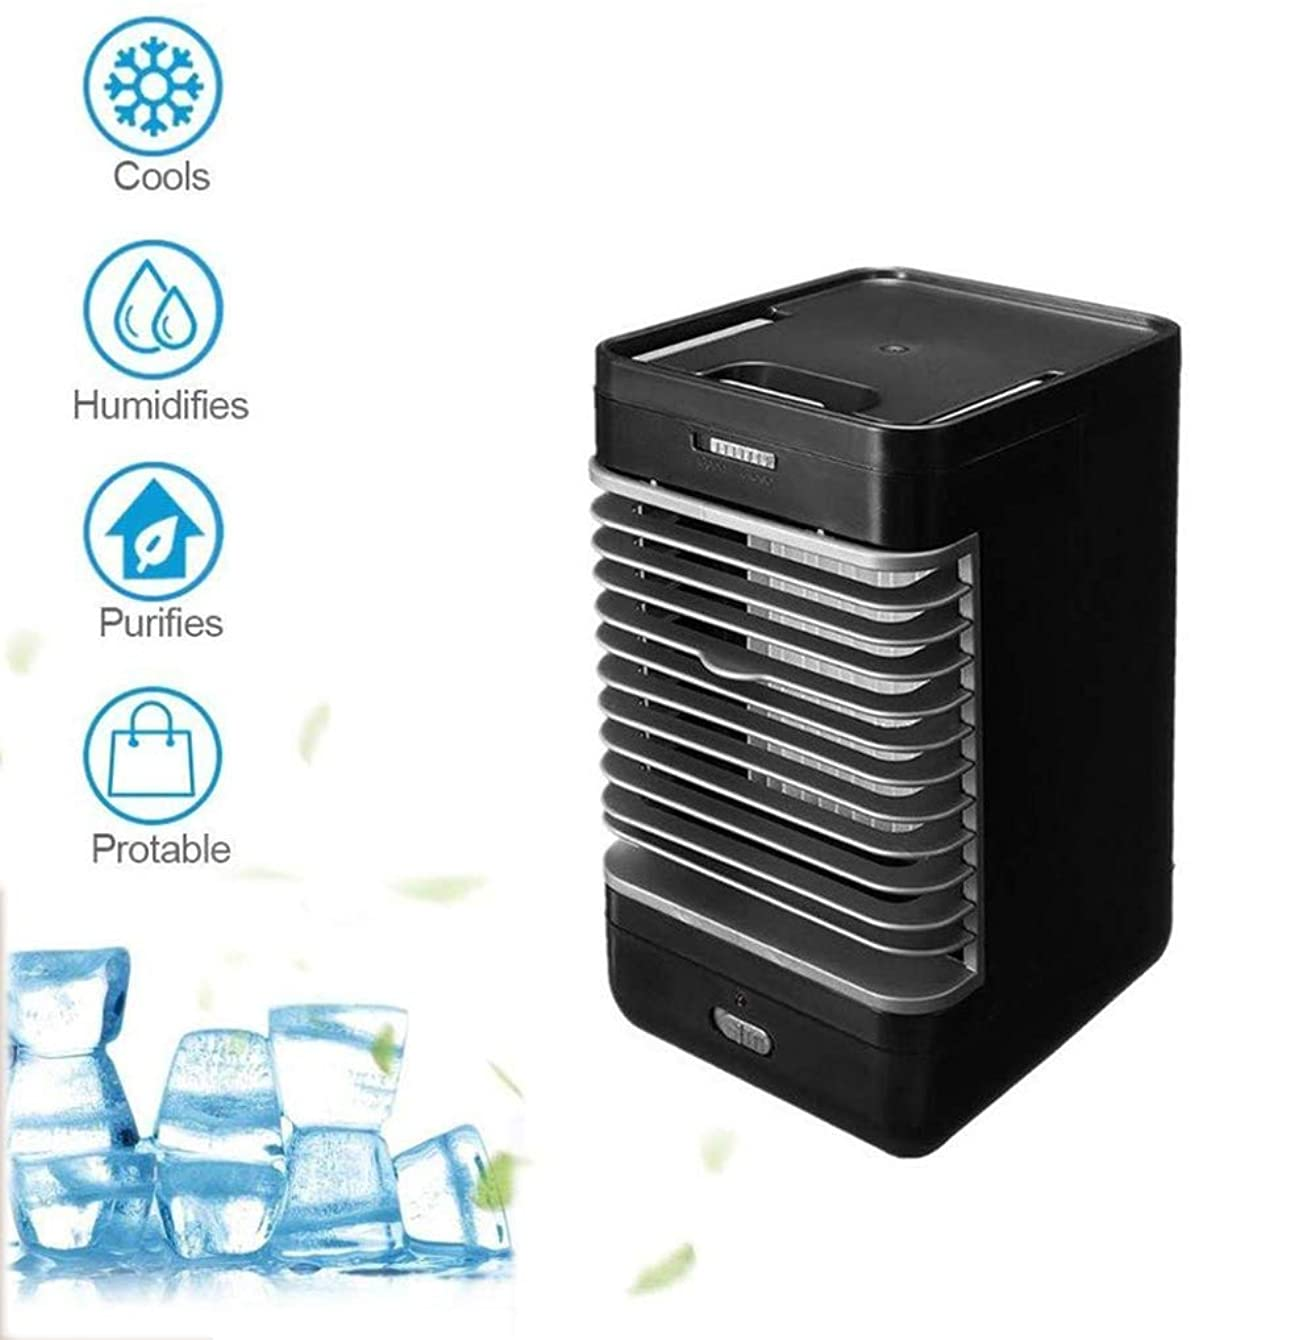 Compact air personal space cooler 3 in 1 cube evapolar personal fan air cooler For Desk camping house kitchen silent indoor air conditioner black